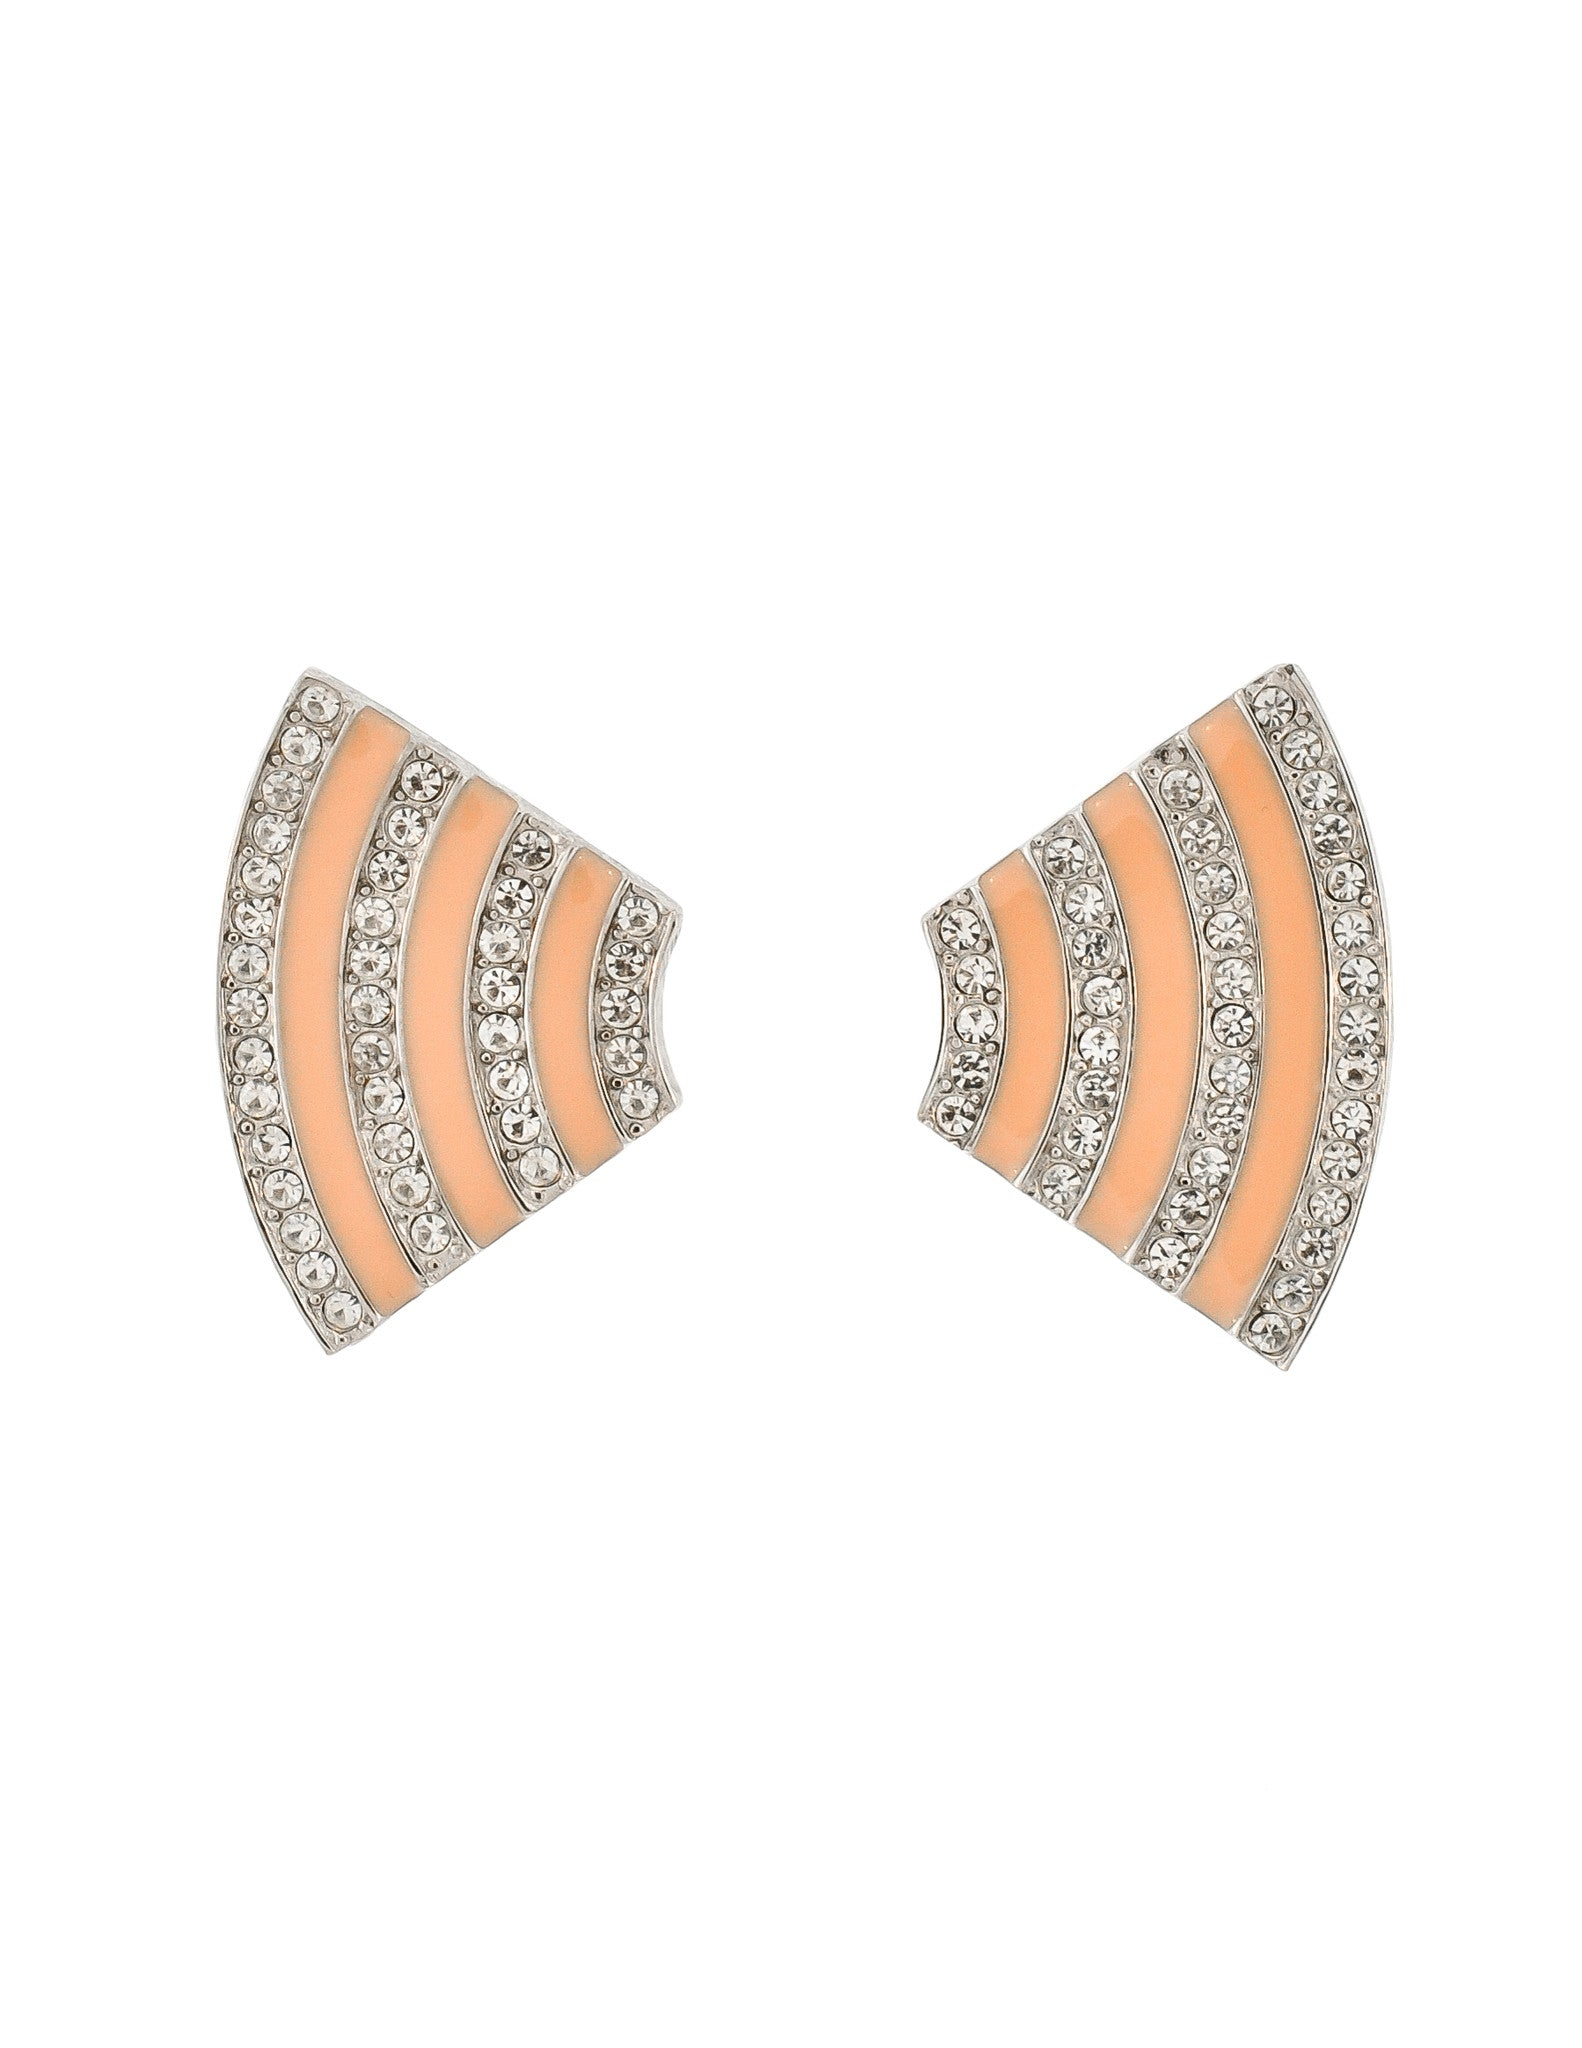 Givenchy Vintage Pale Pink Enamel Silver Rhinestone Earrings - Amarcord Vintage Fashion  - 1